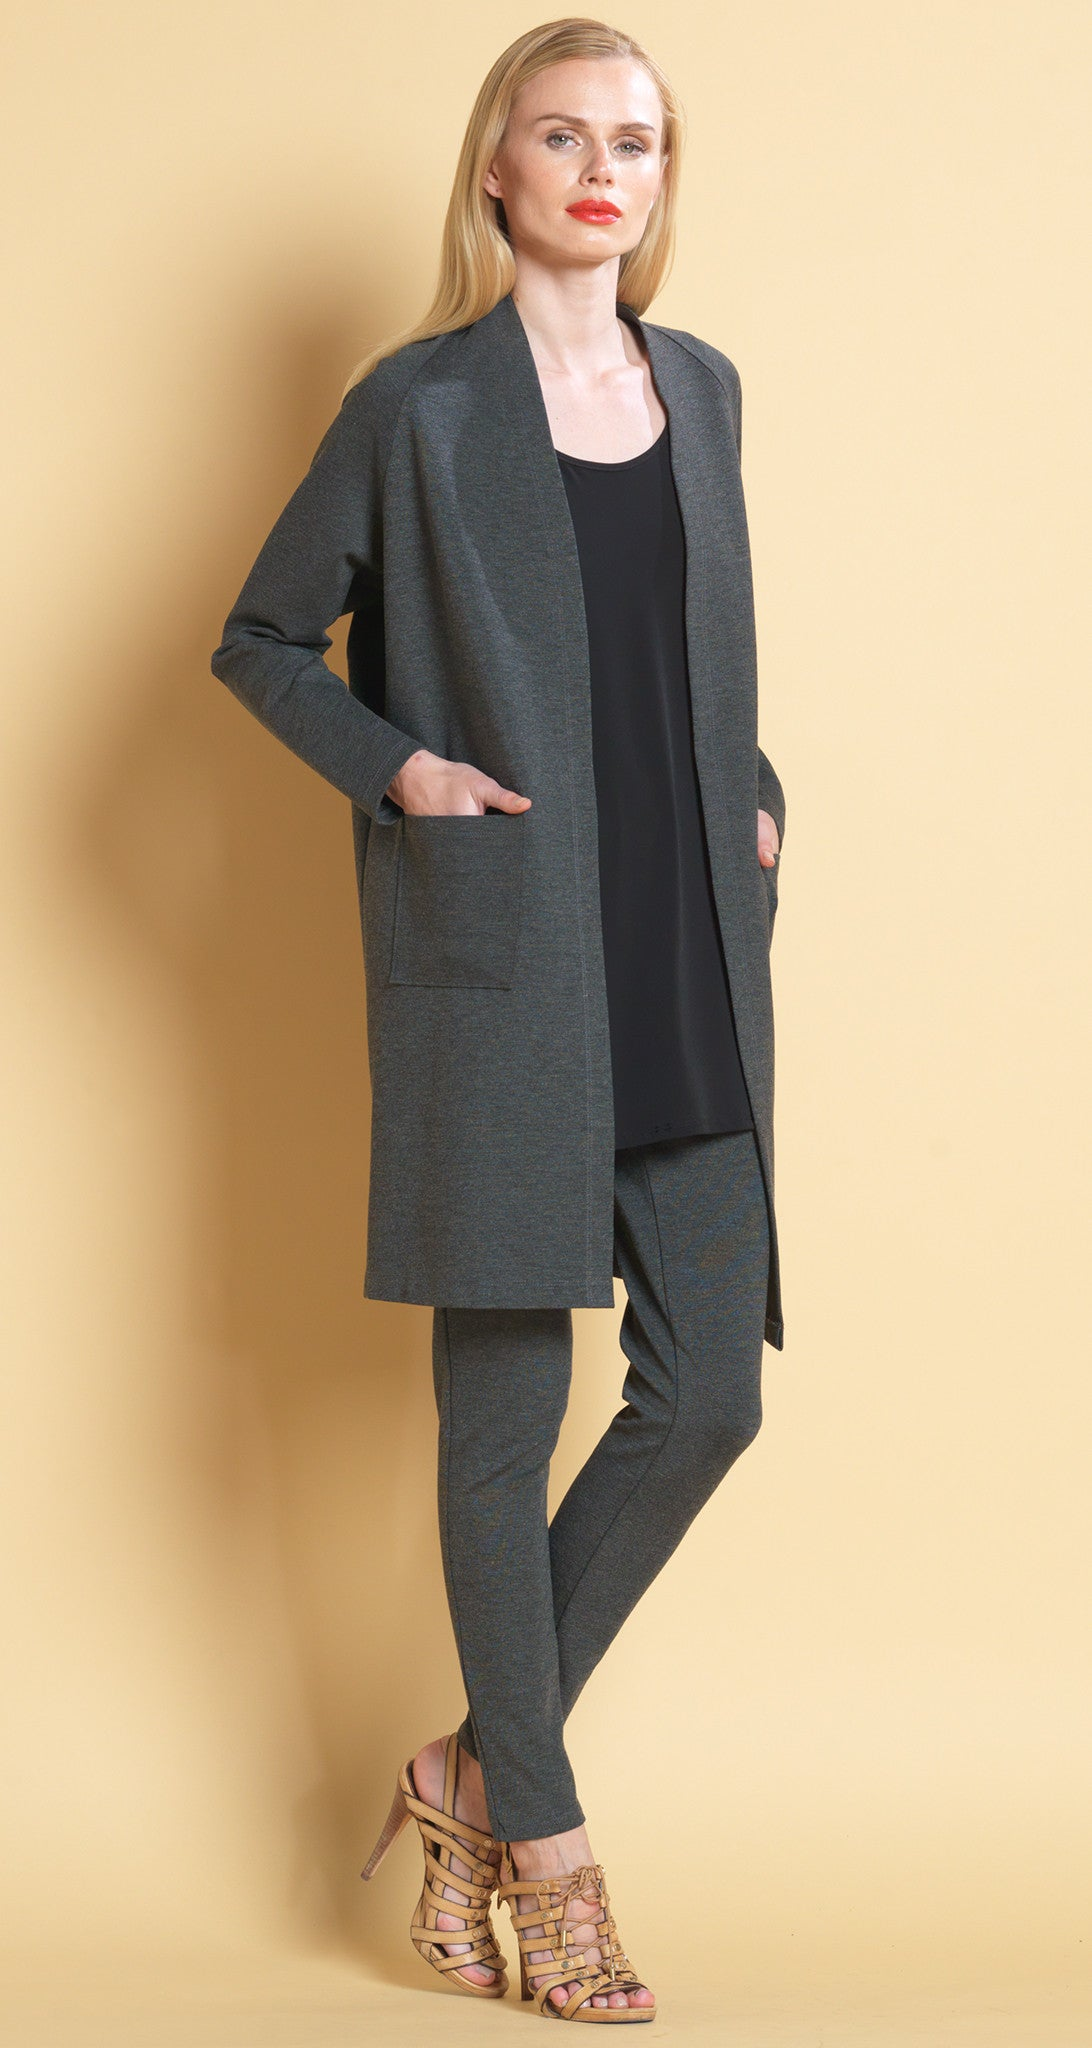 Ponte Classic Cardigan Charcoal - XS Final Sale!